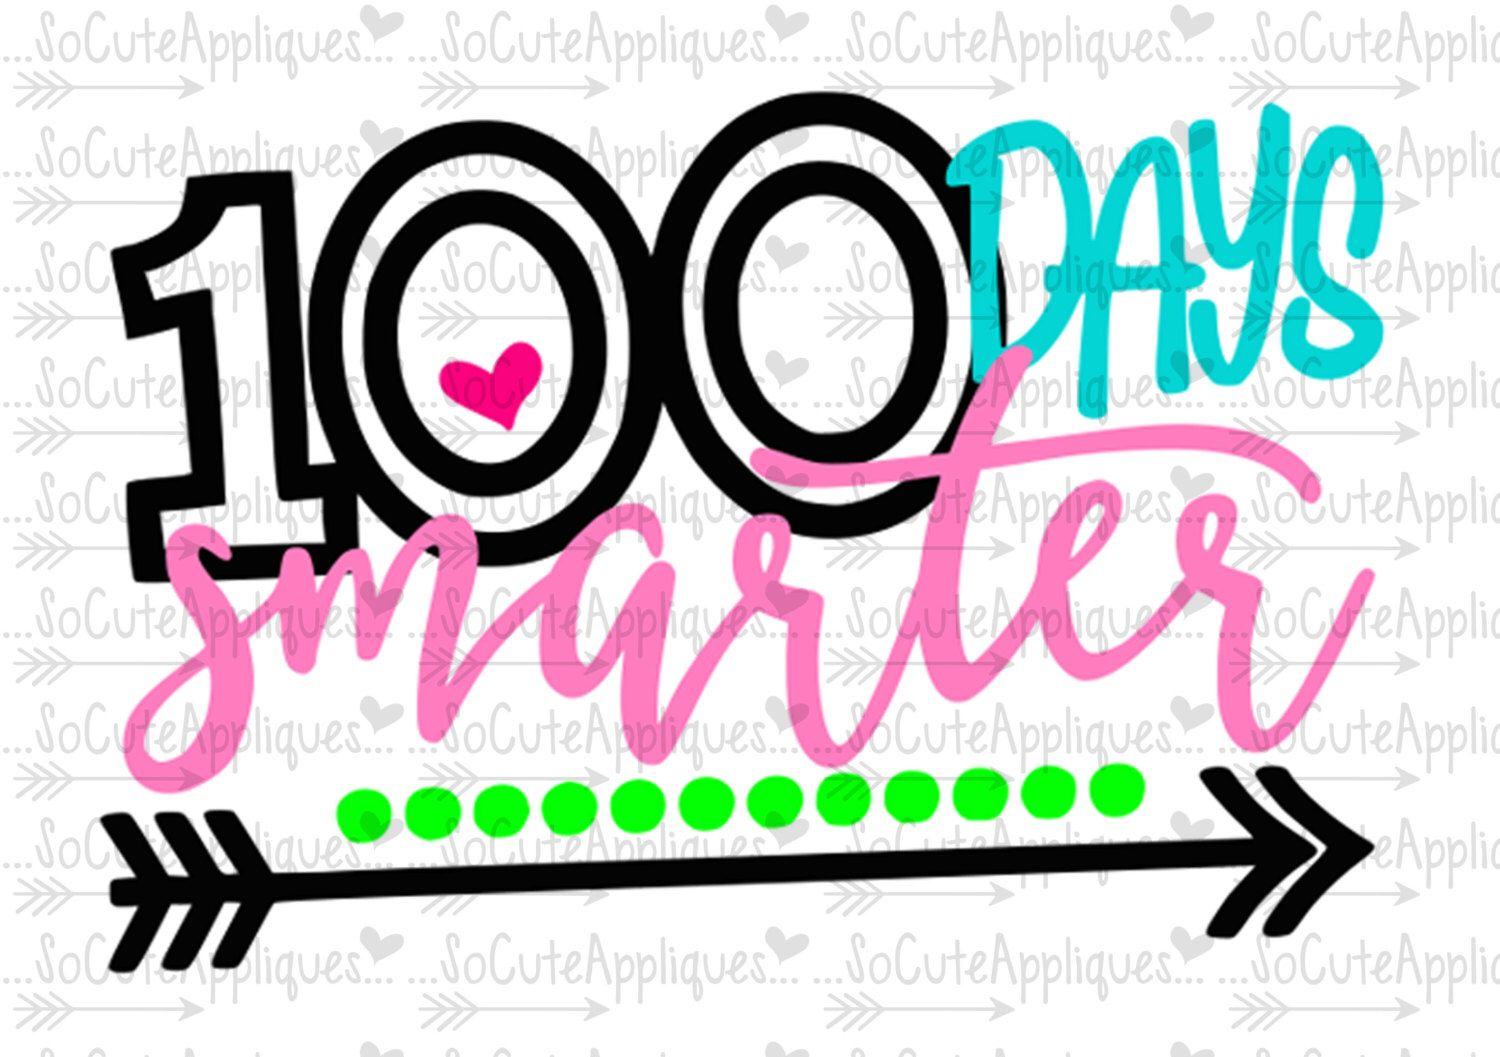 Svg dxf eps cut. 100 clipart 100 days smart